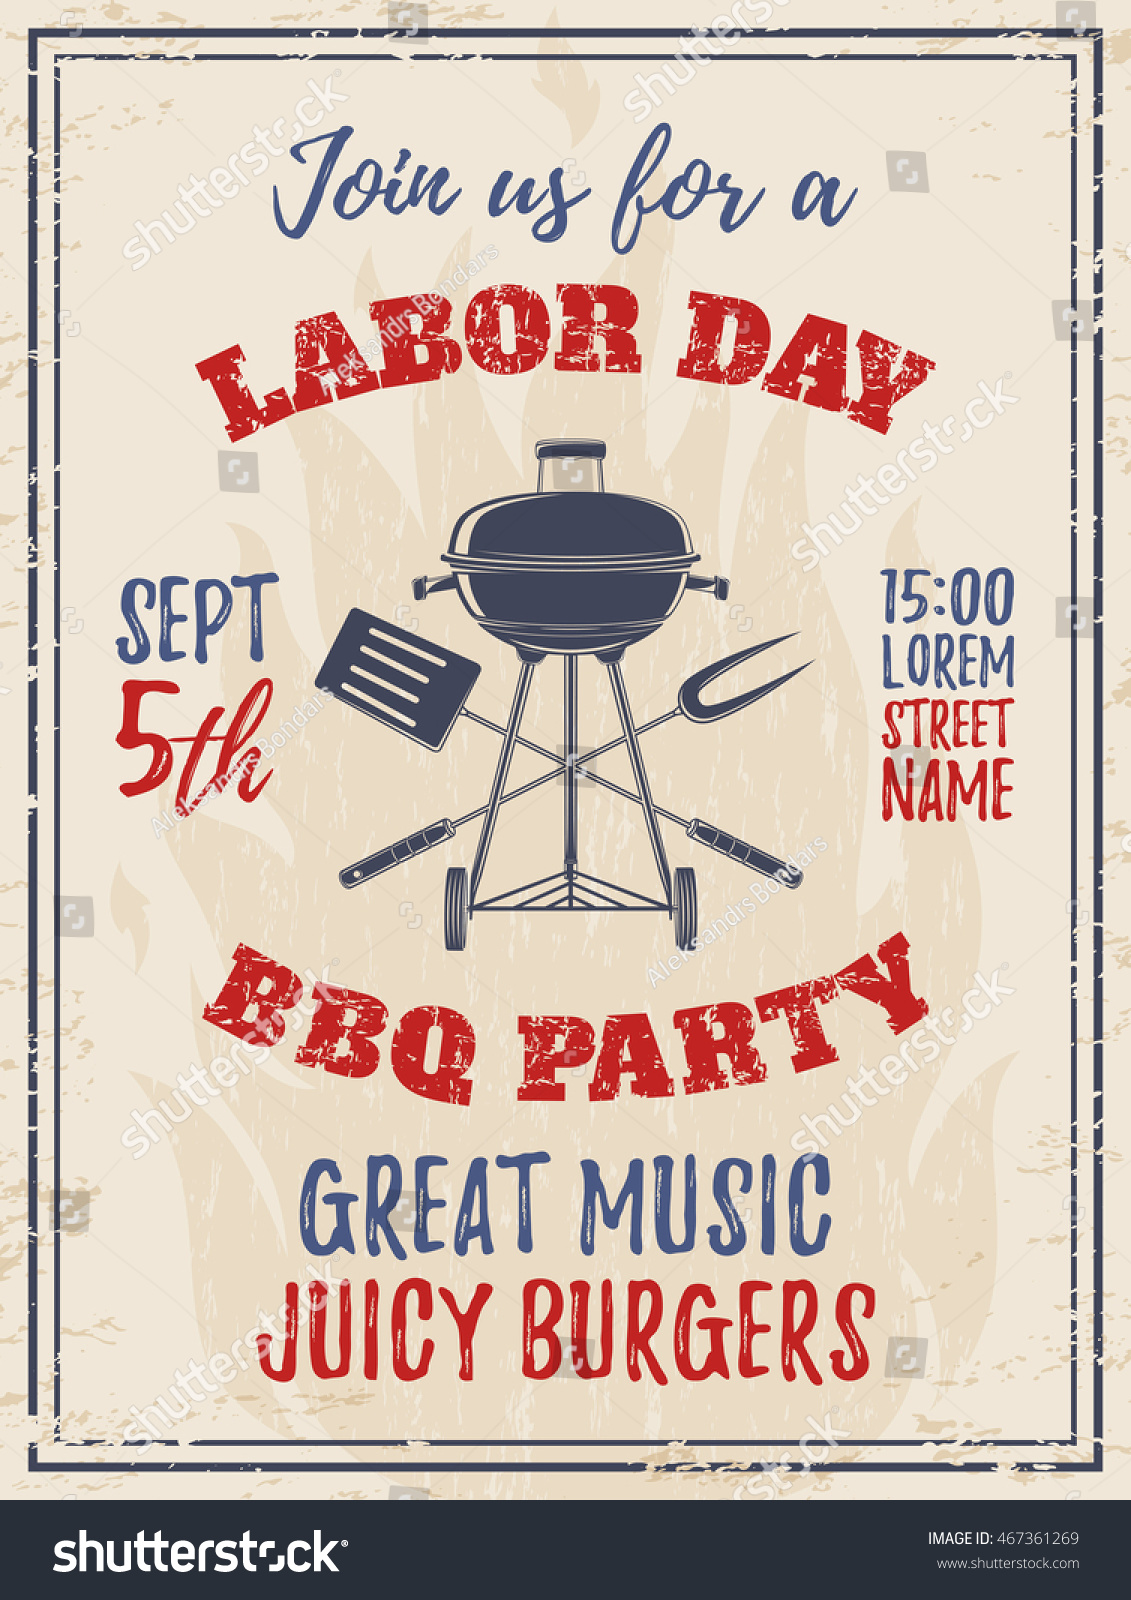 Vintage Labor Day BBQ Party Background Stock Vector 467361269 ...